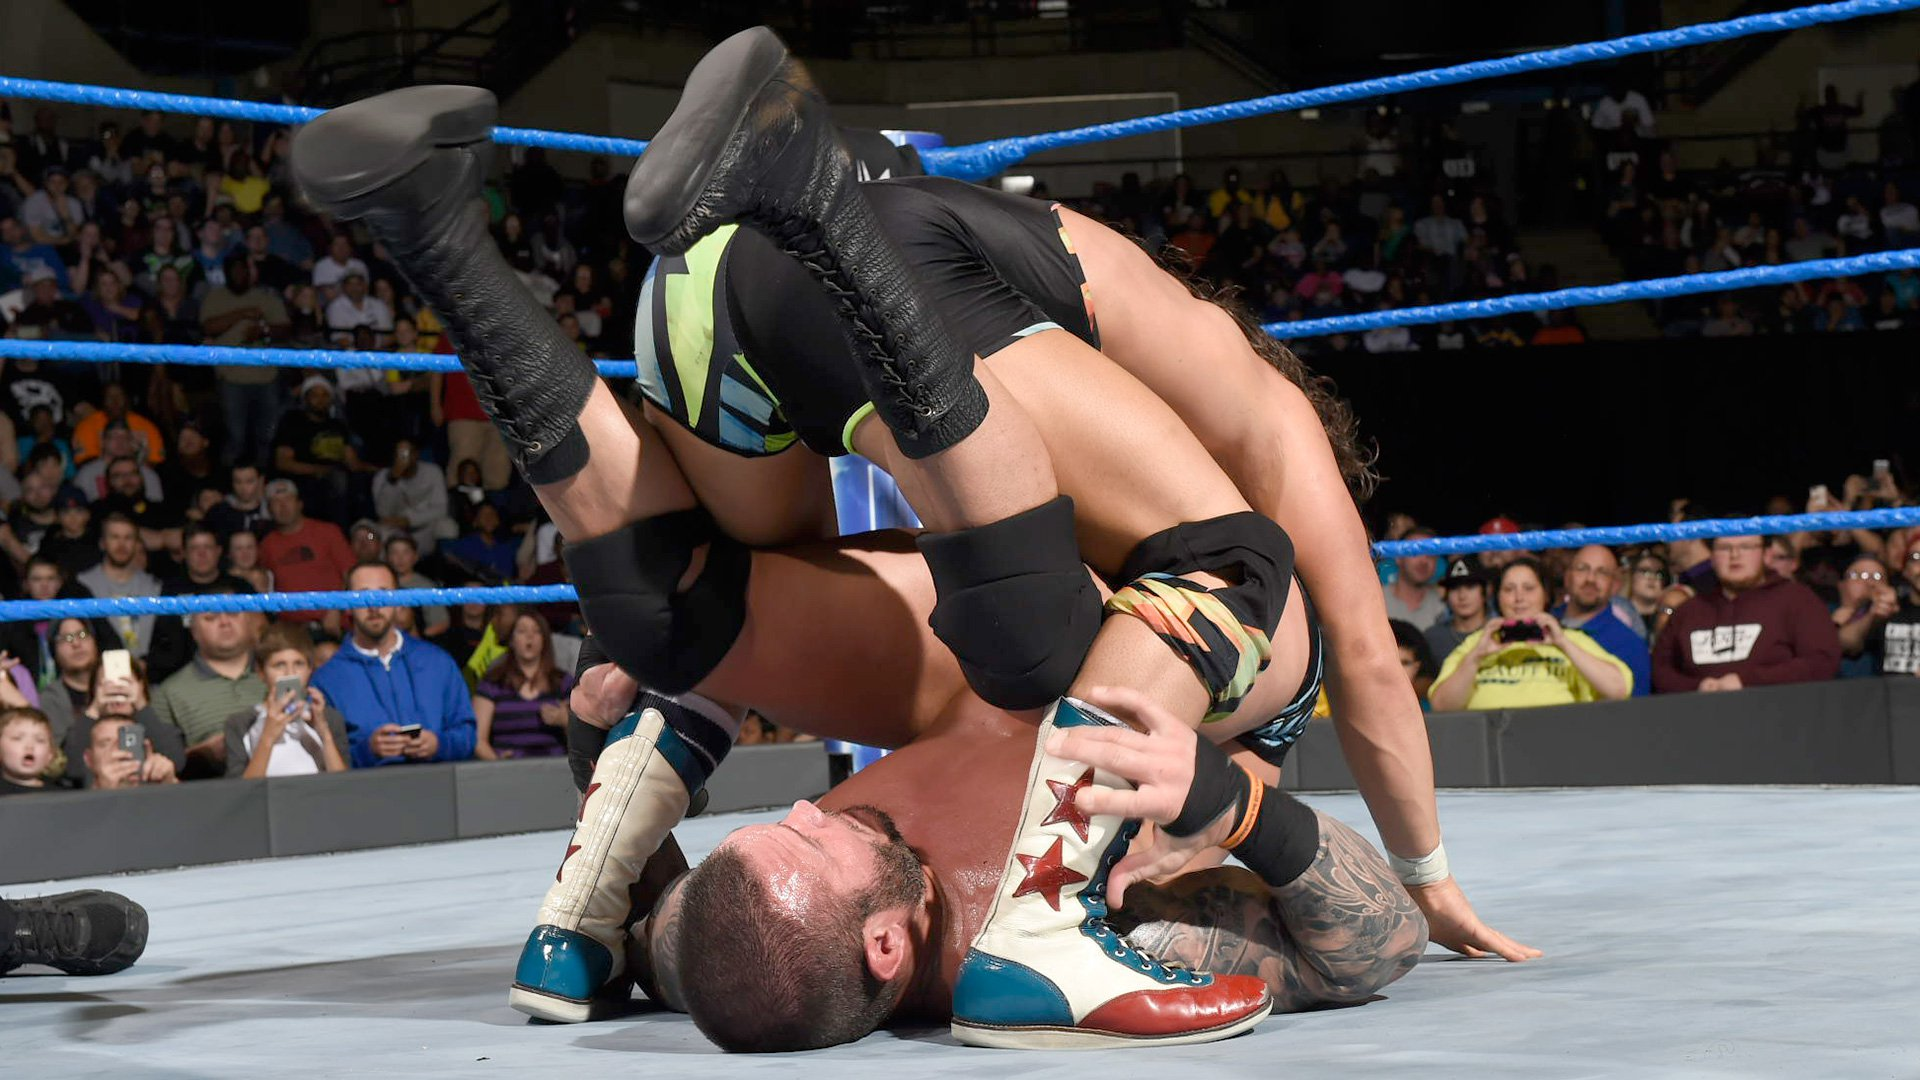 In the height of the contest, some accidental miscommunication by Luke Harper allows the titleholders to retain when Gable rolls up Orton after Harper inadvertently distracts The Viper.